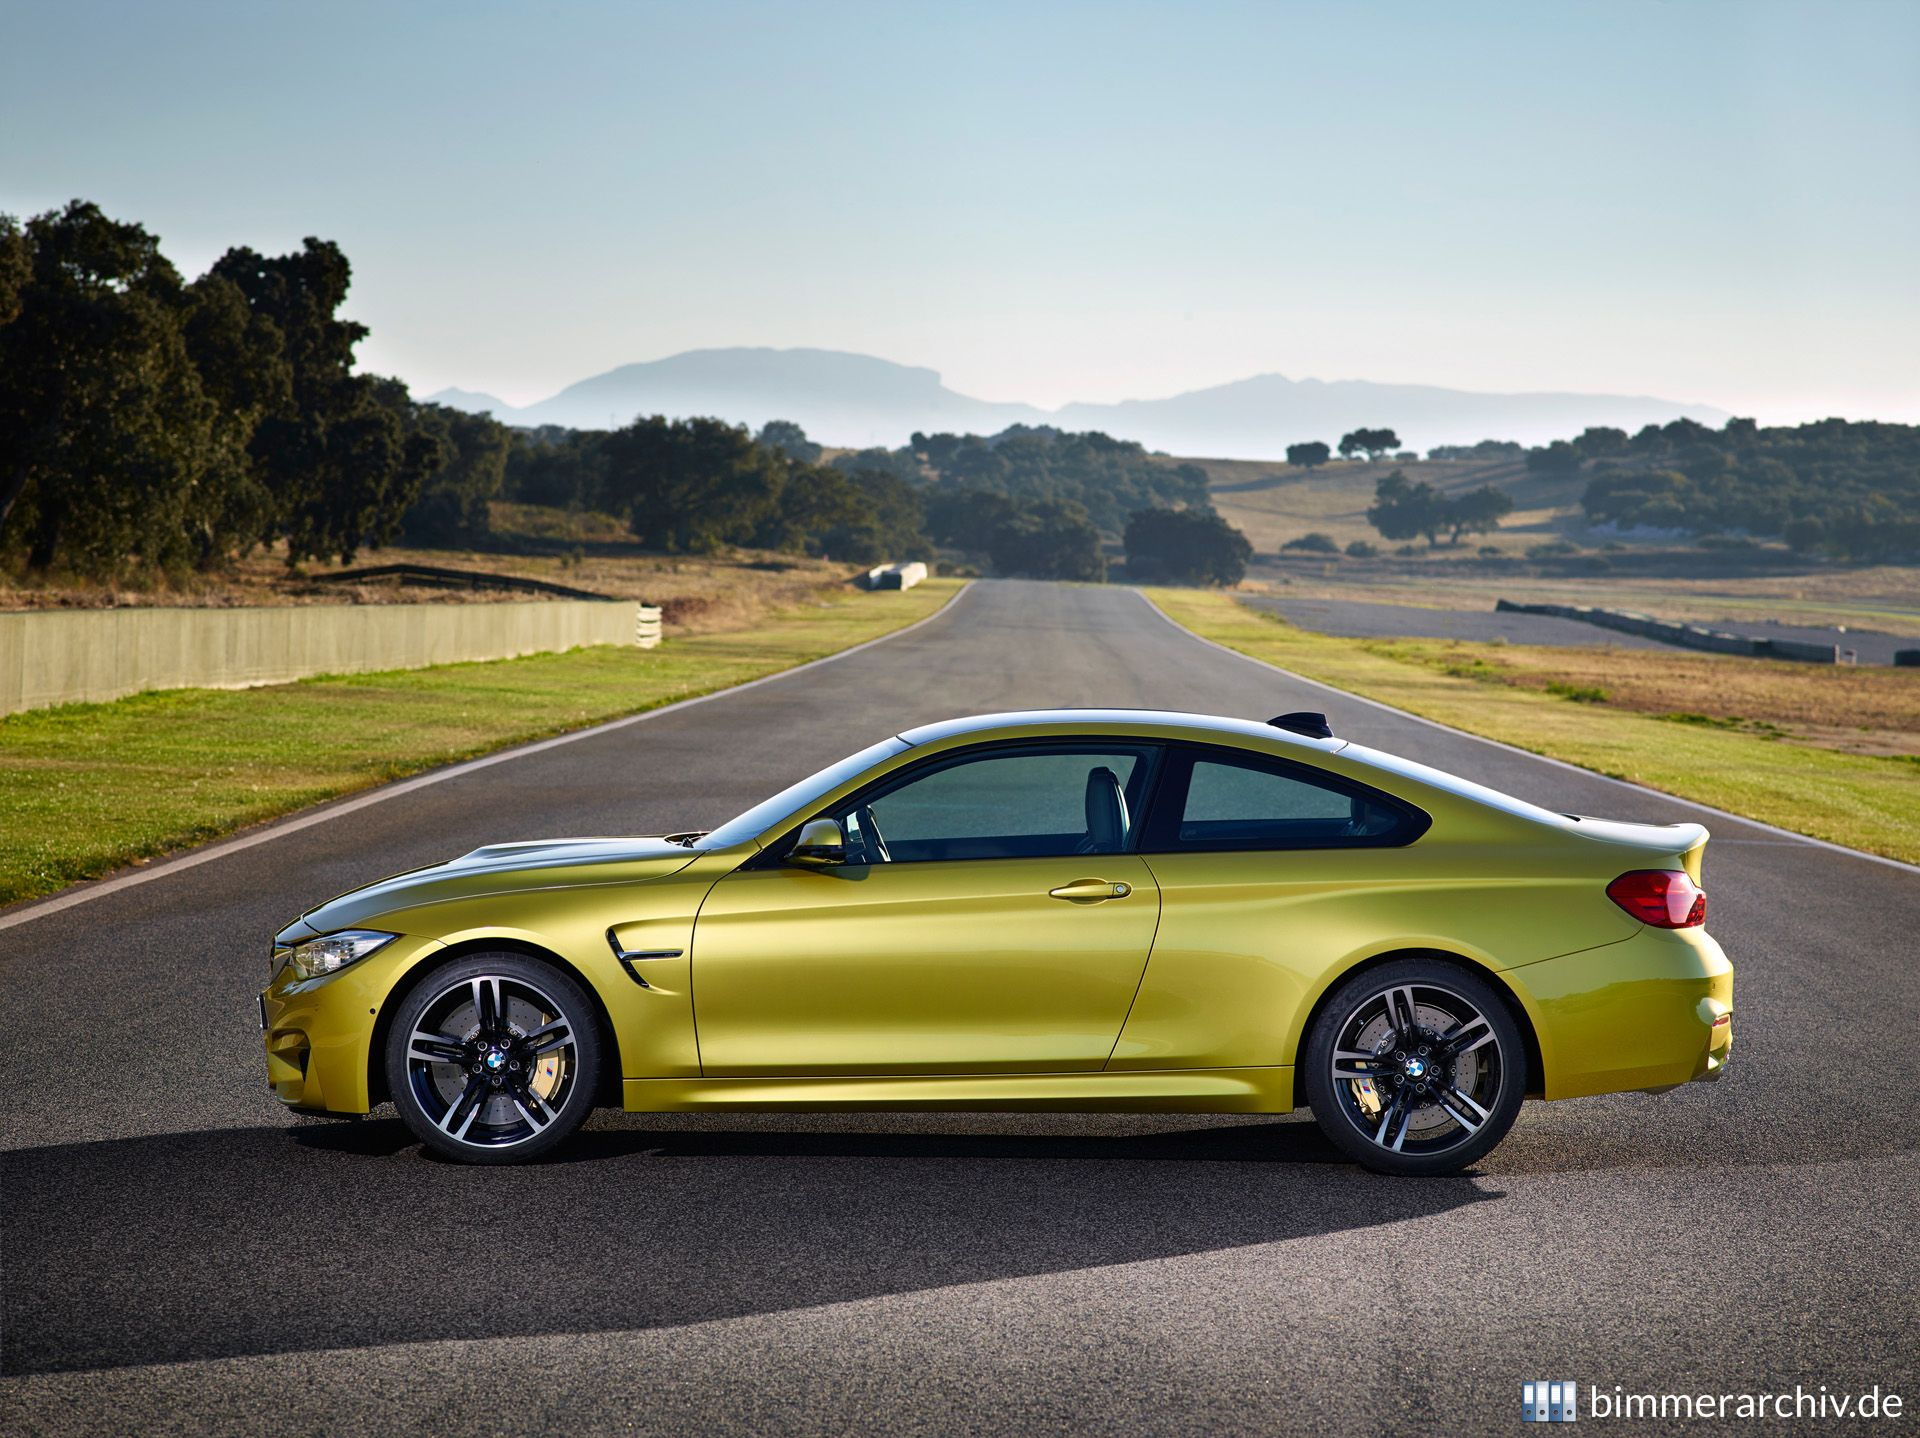 Model Archive for BMW models · BMW M4 Coupe · bmwarchive